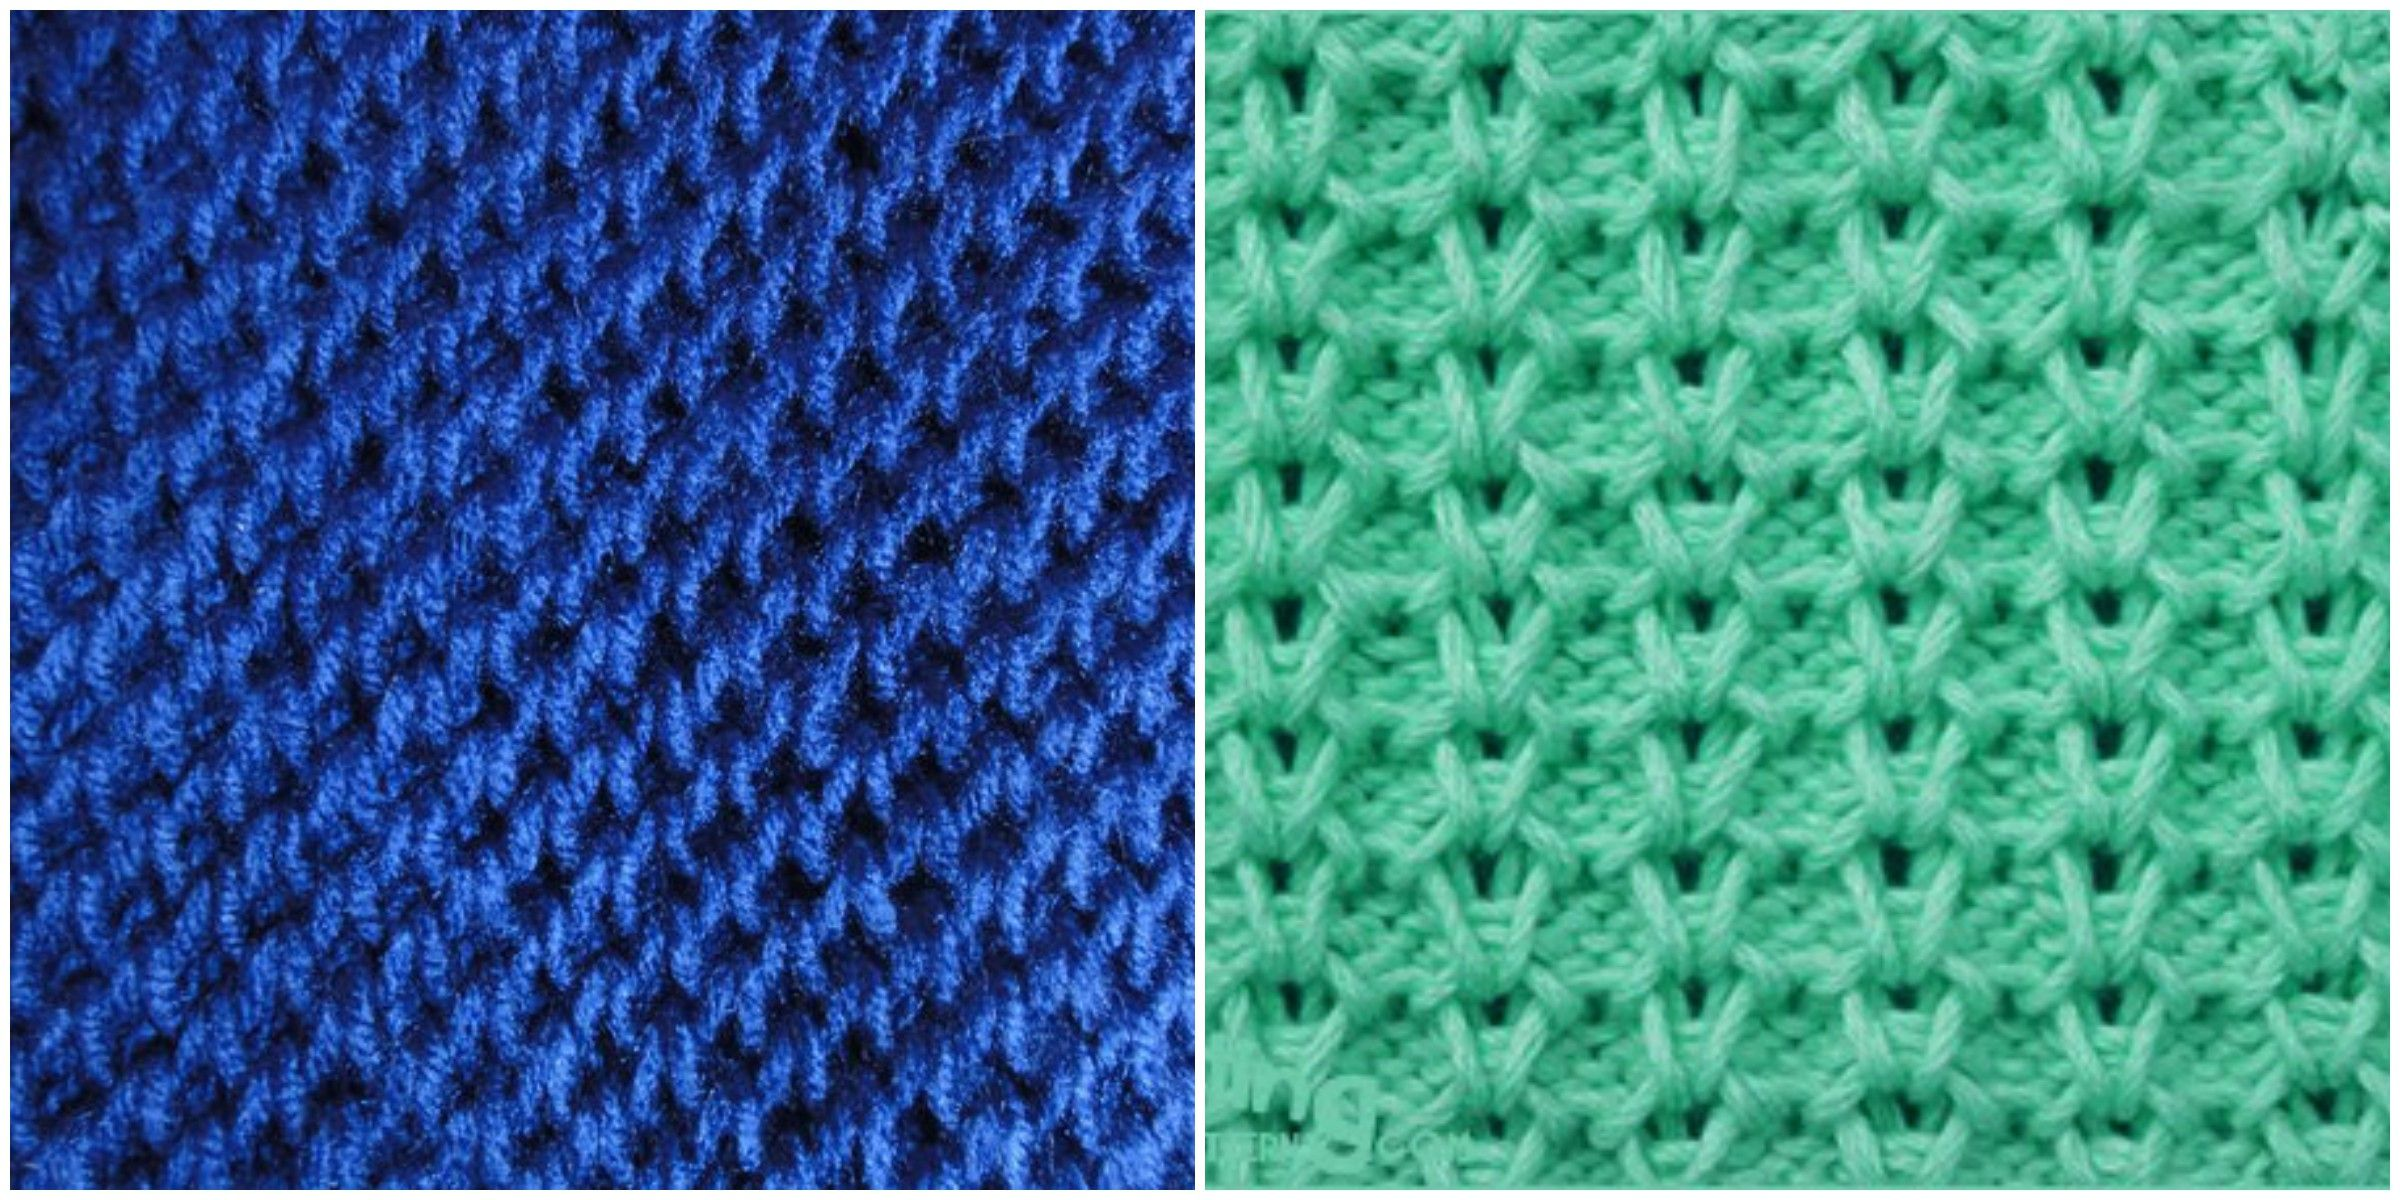 Knitting Stitches Honeycomb : How to Knit the Honeycomb Brioche Stitch Crochet Patterns And Video Tutoria...